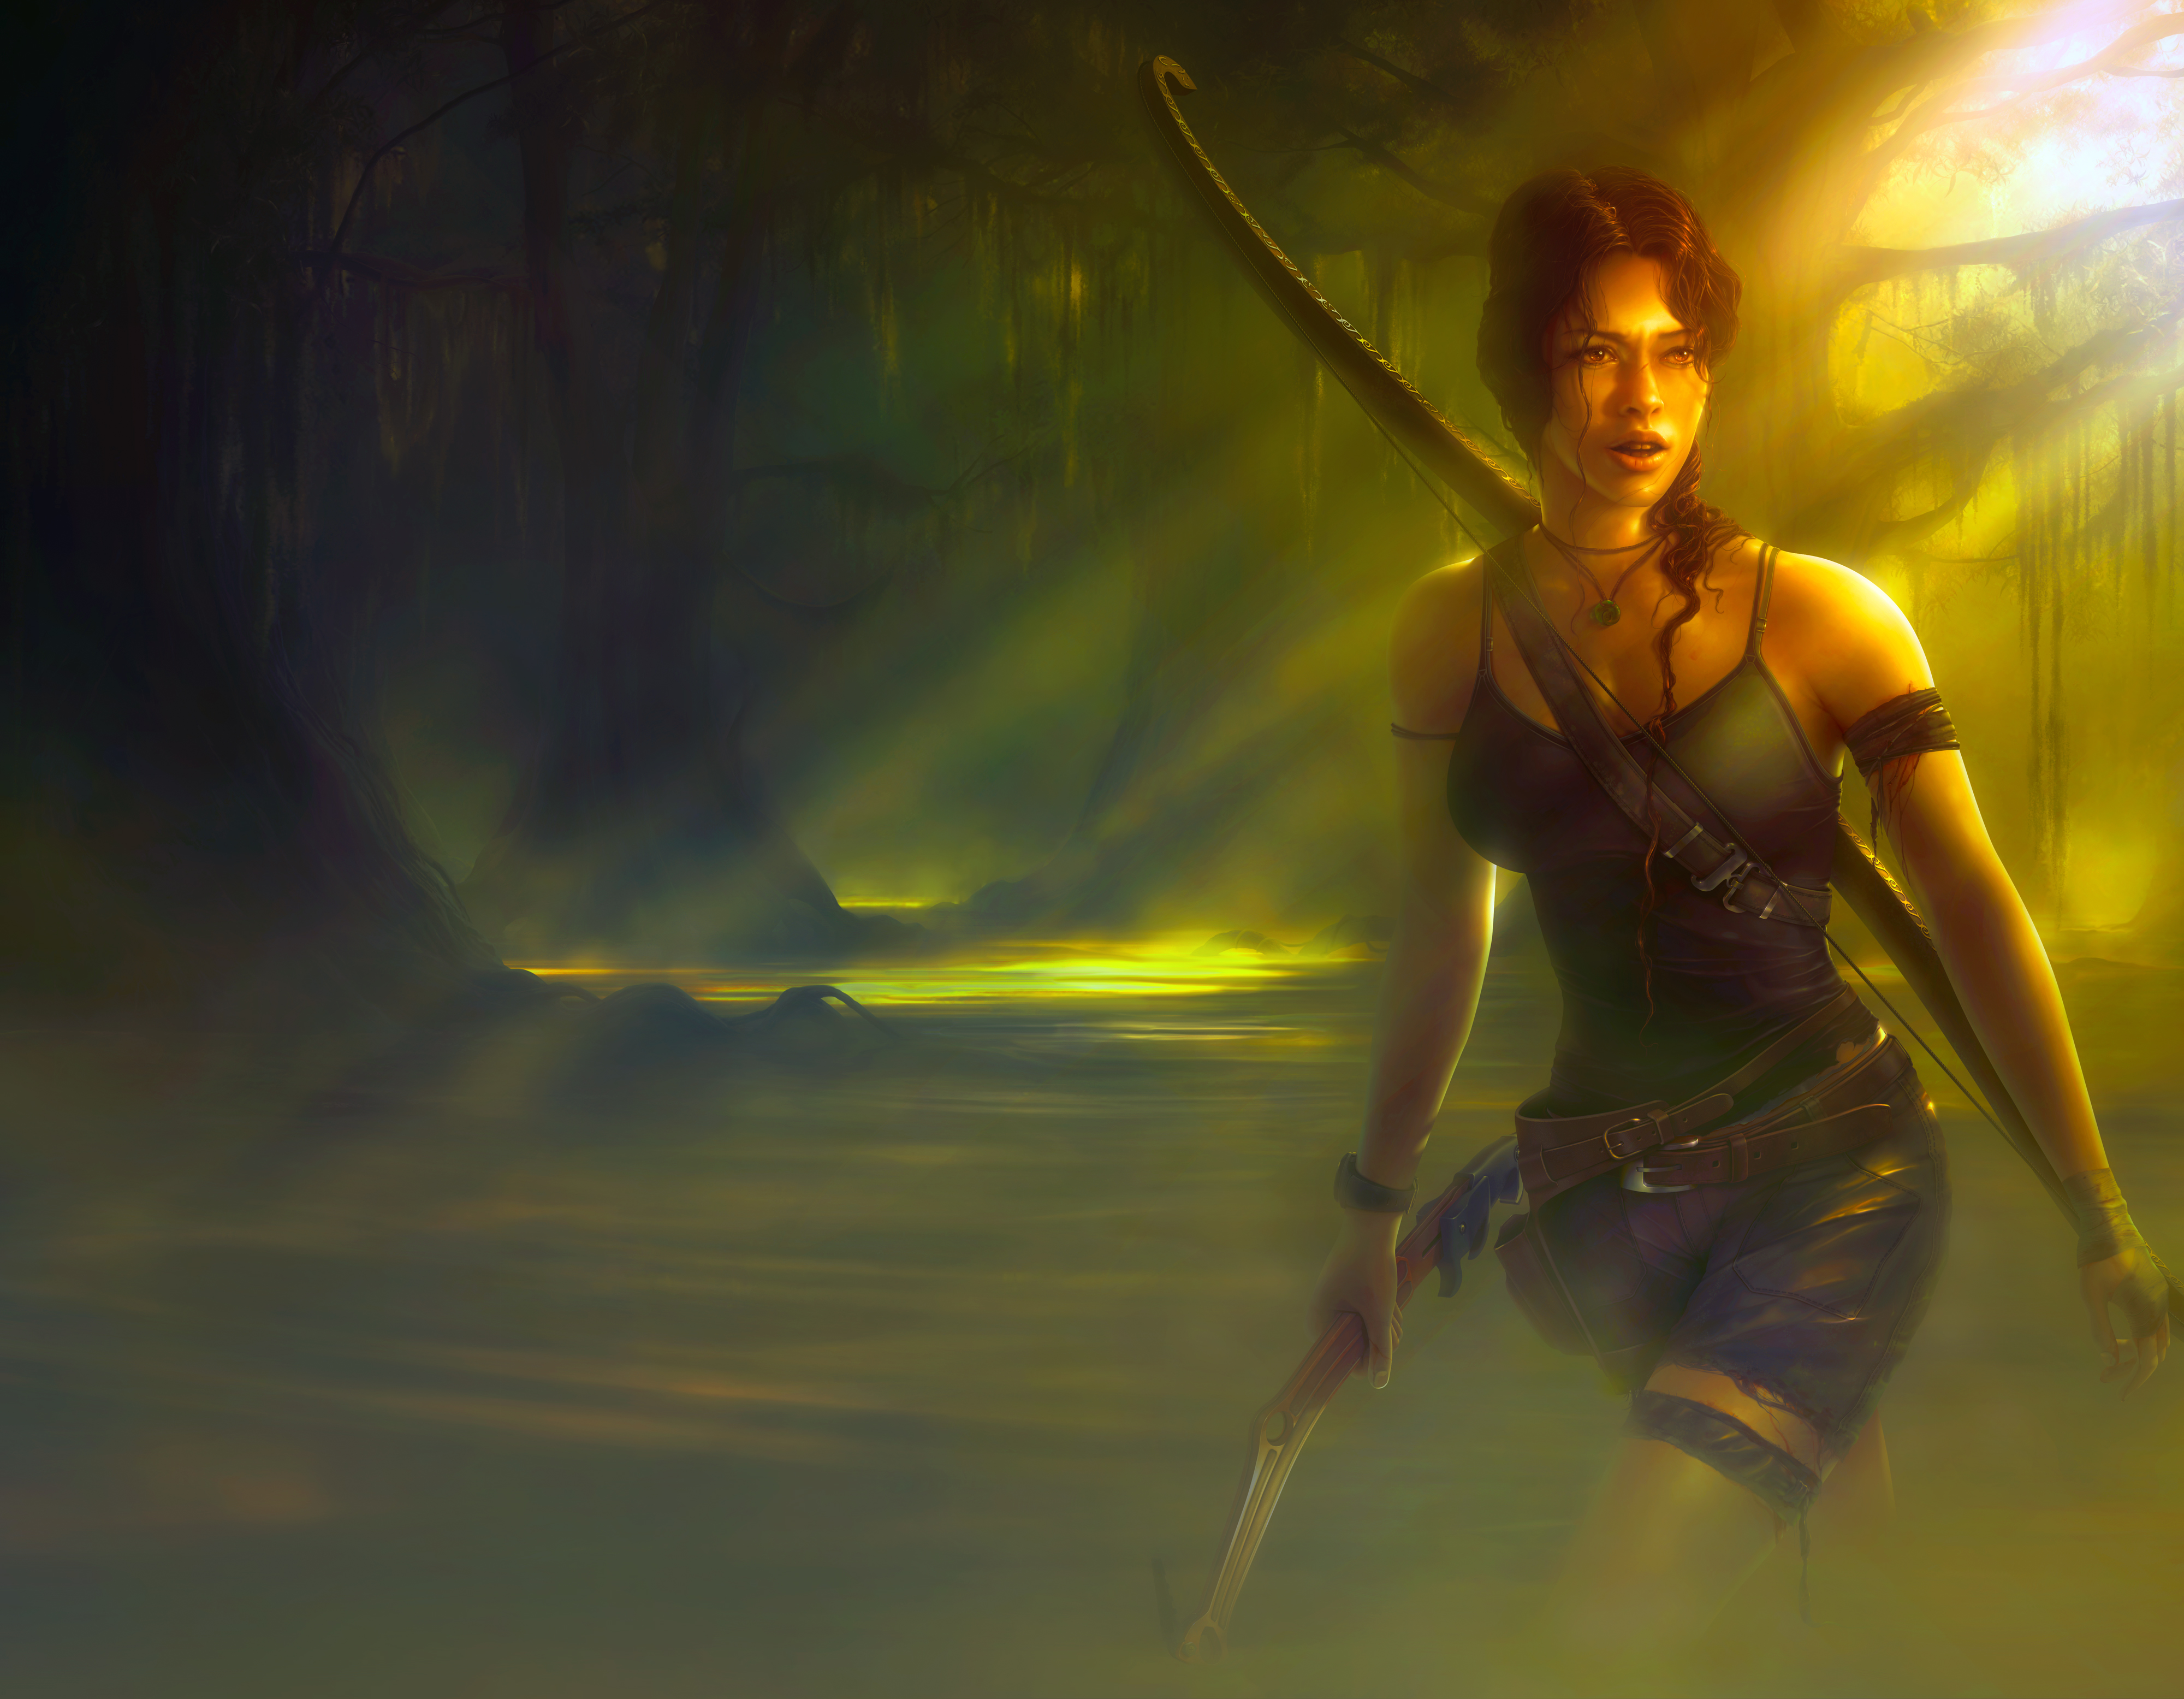 Tomb Raider - Obscurity by nevs28